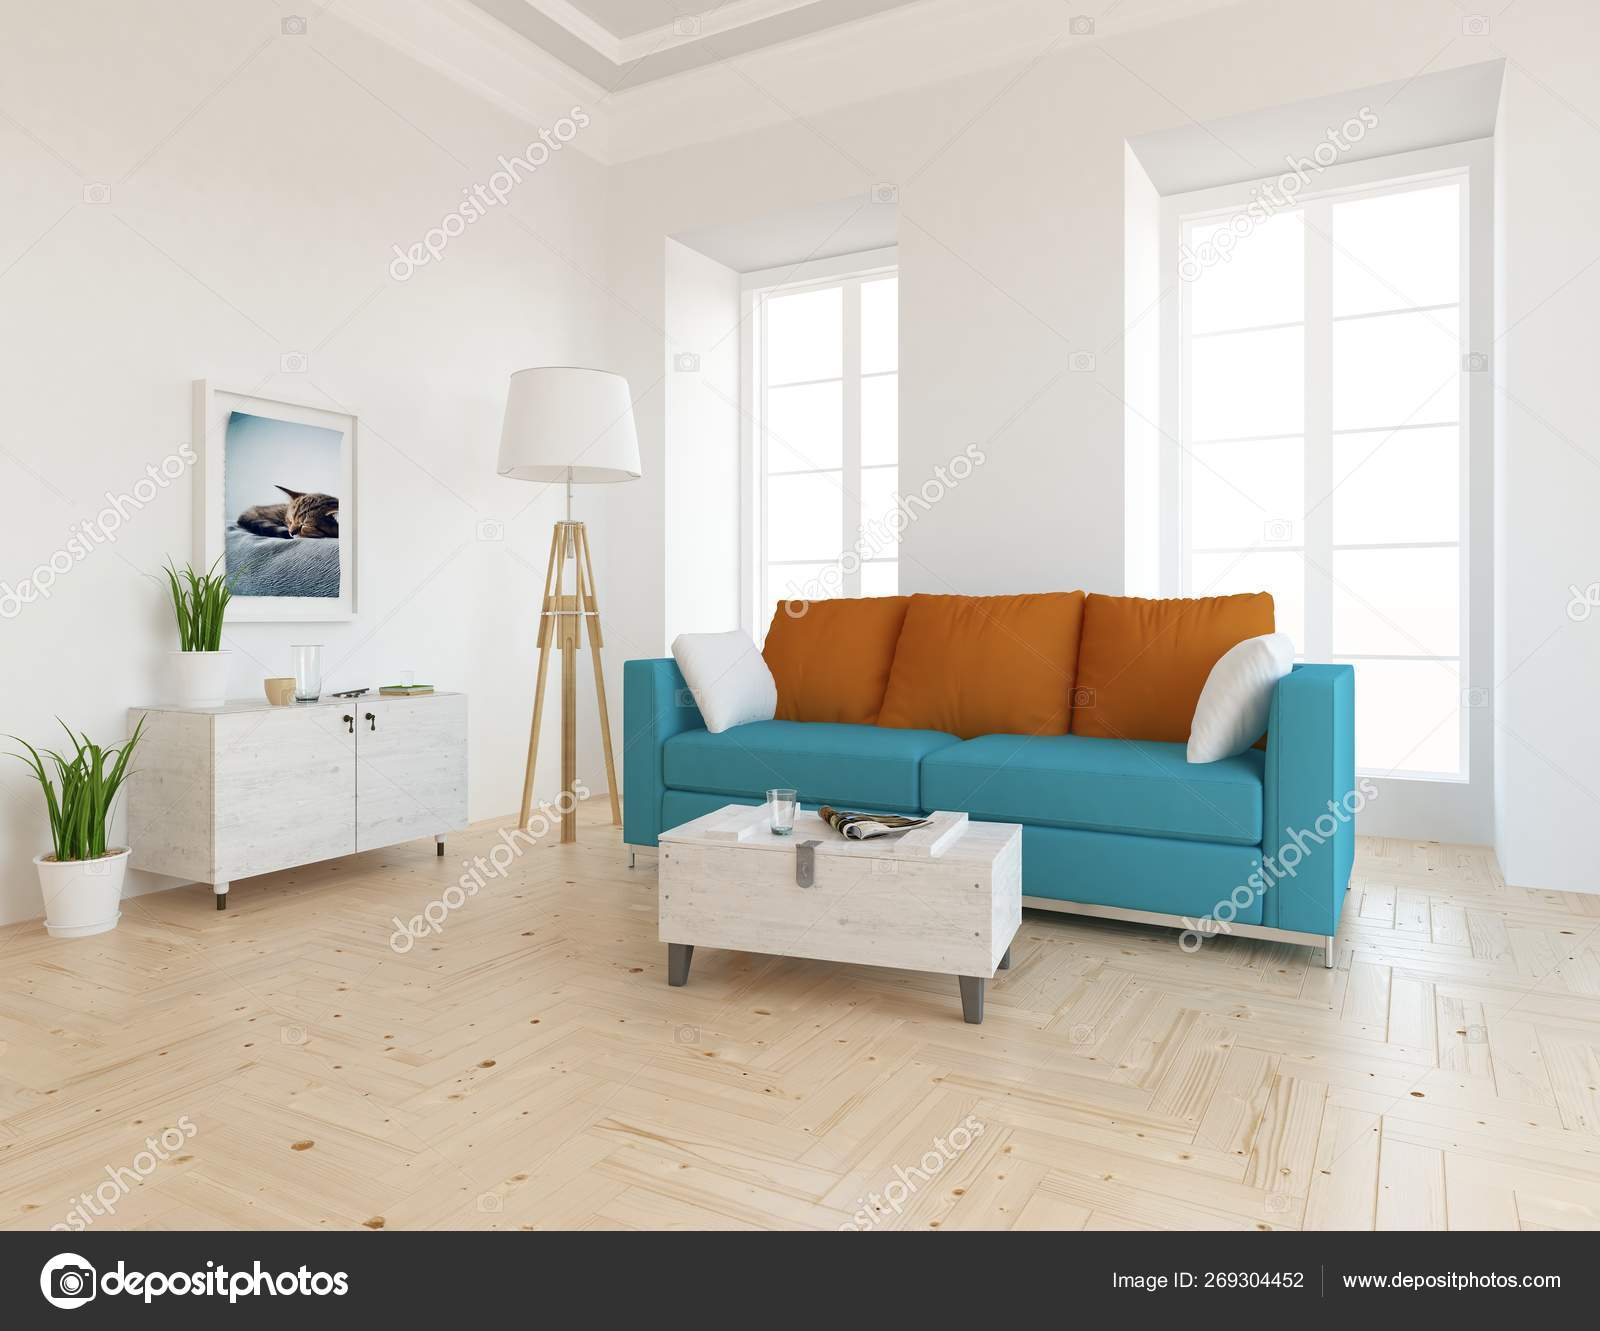 Idea of scandinavian living room interior with sofa, on the wooden floor  and decor. Home nordic interior. 32D illustration 2693204452